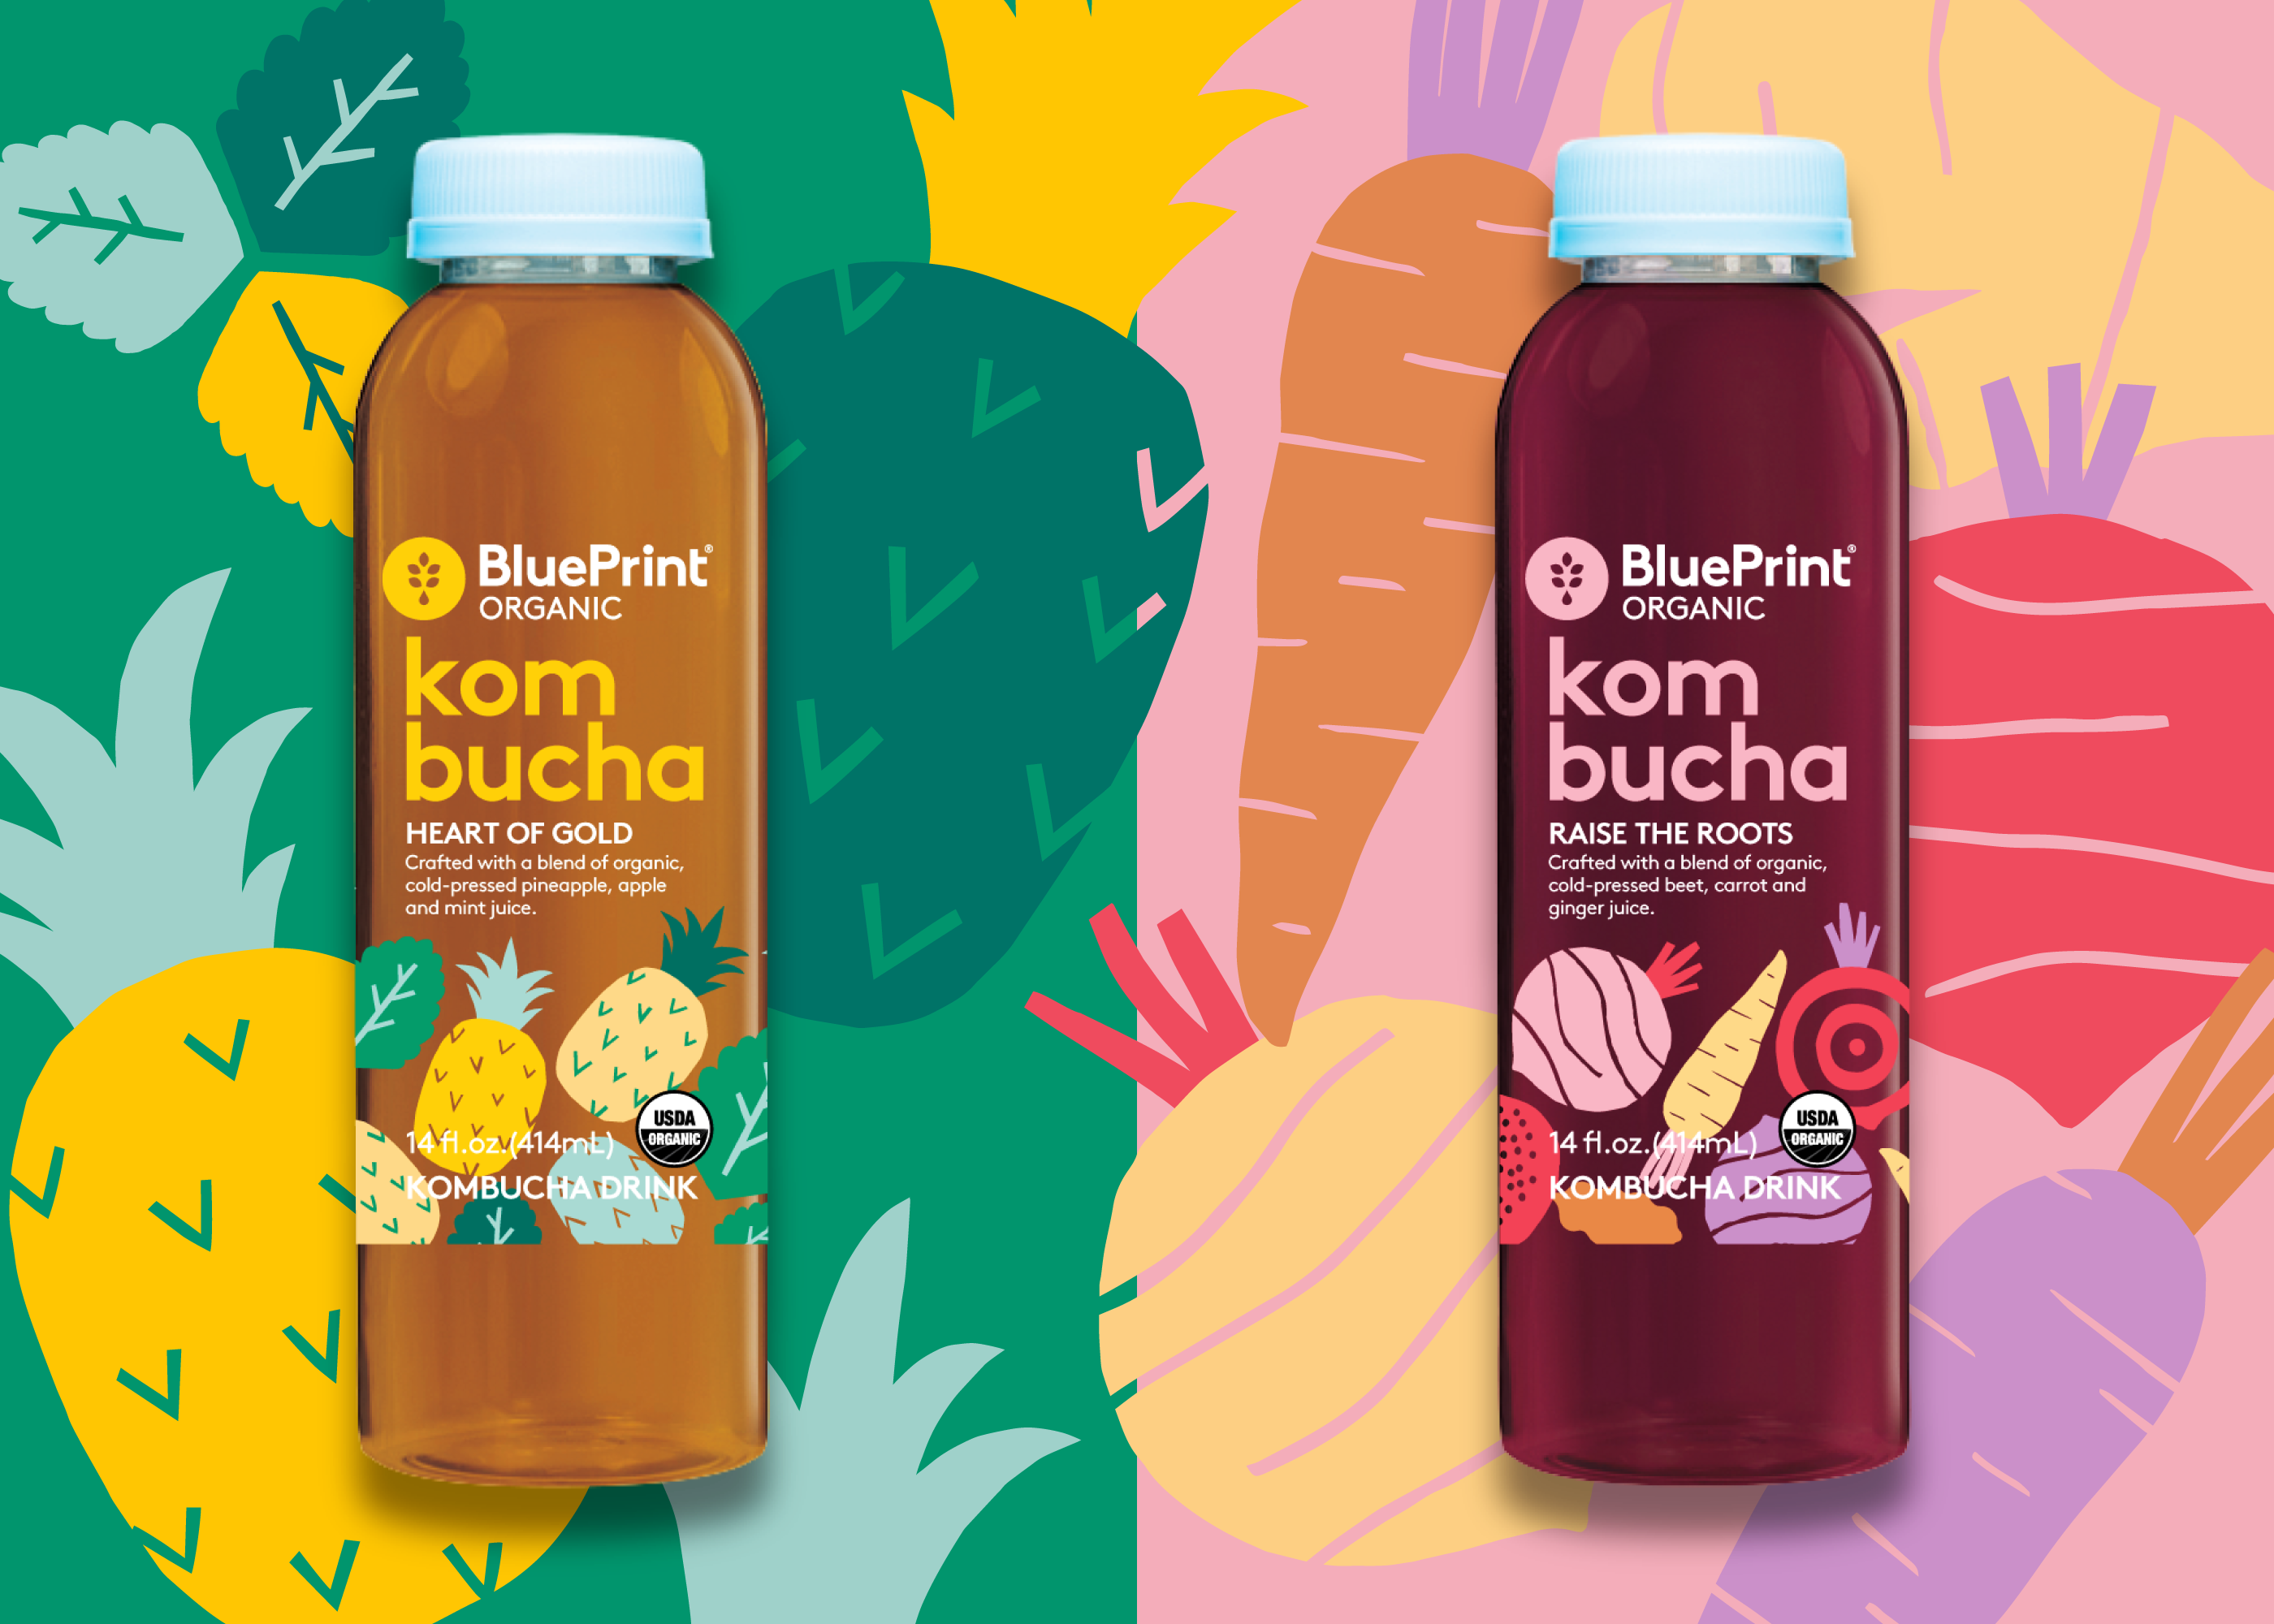 Illustration for a new line of kombucha drinks from blueprint the illustration for a new line of kombucha drinks from blueprint the illustrations are based on malvernweather Choice Image